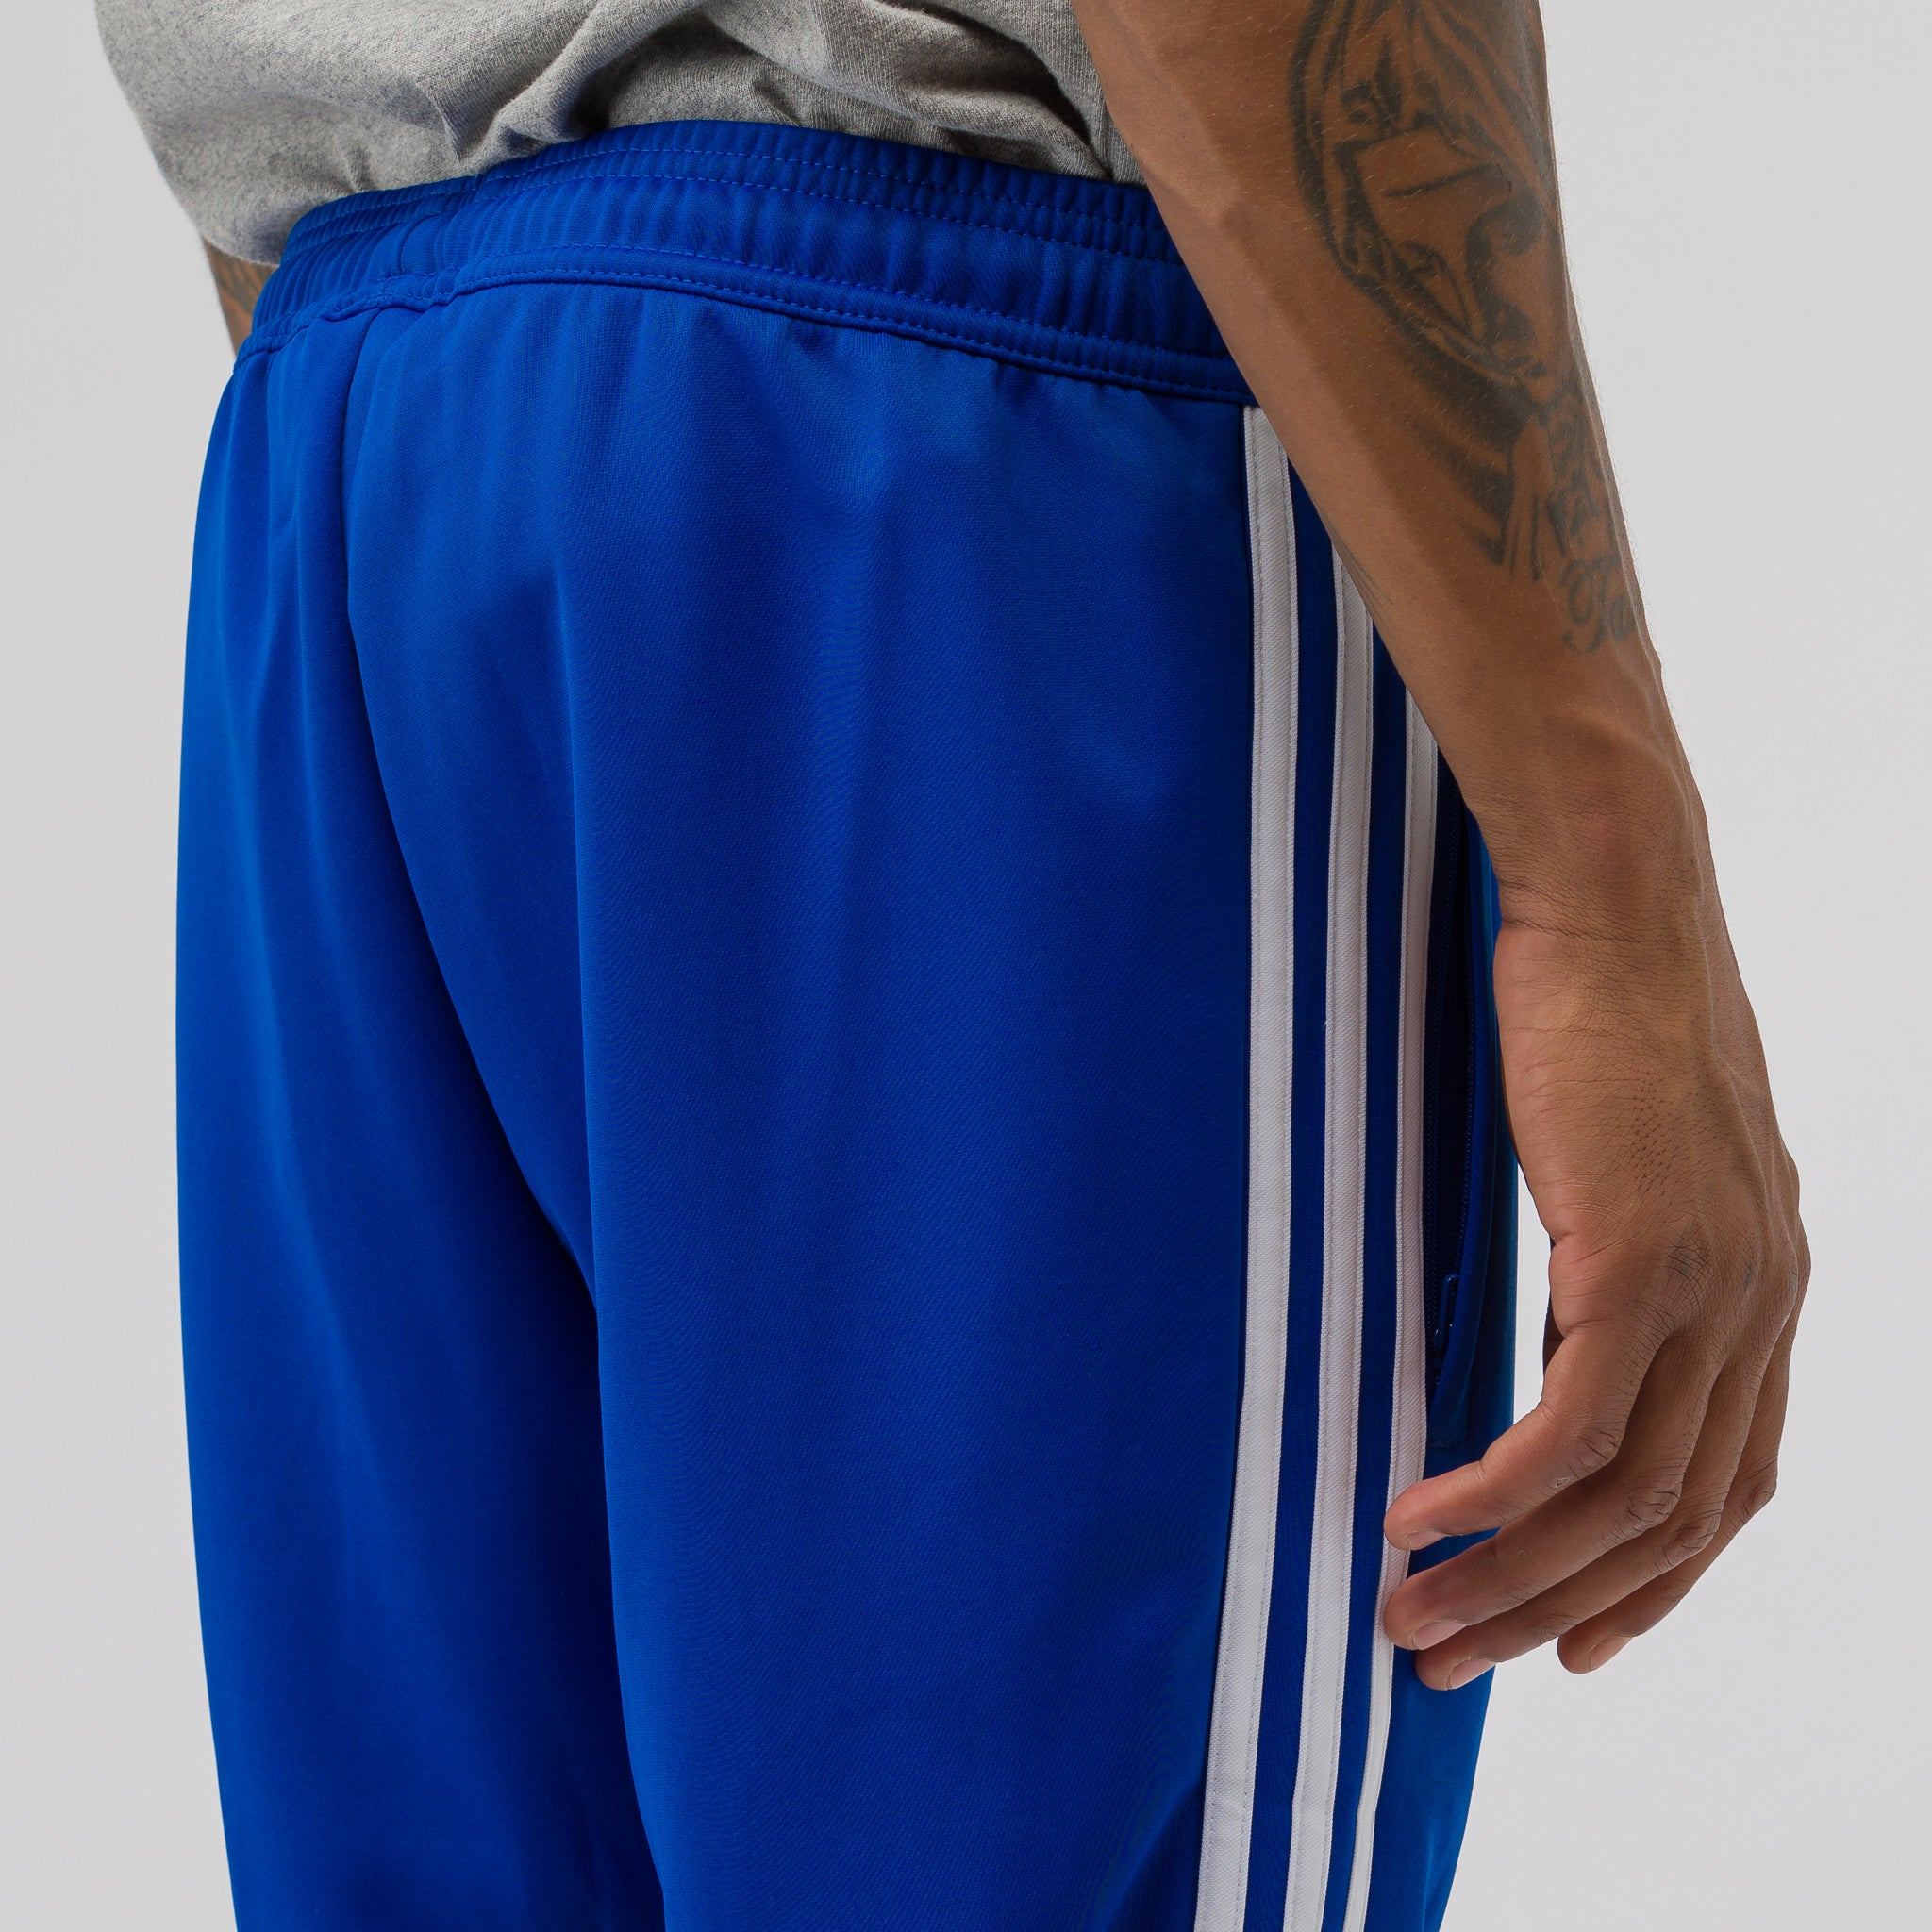 x adidas Track Pant in Royal Blue